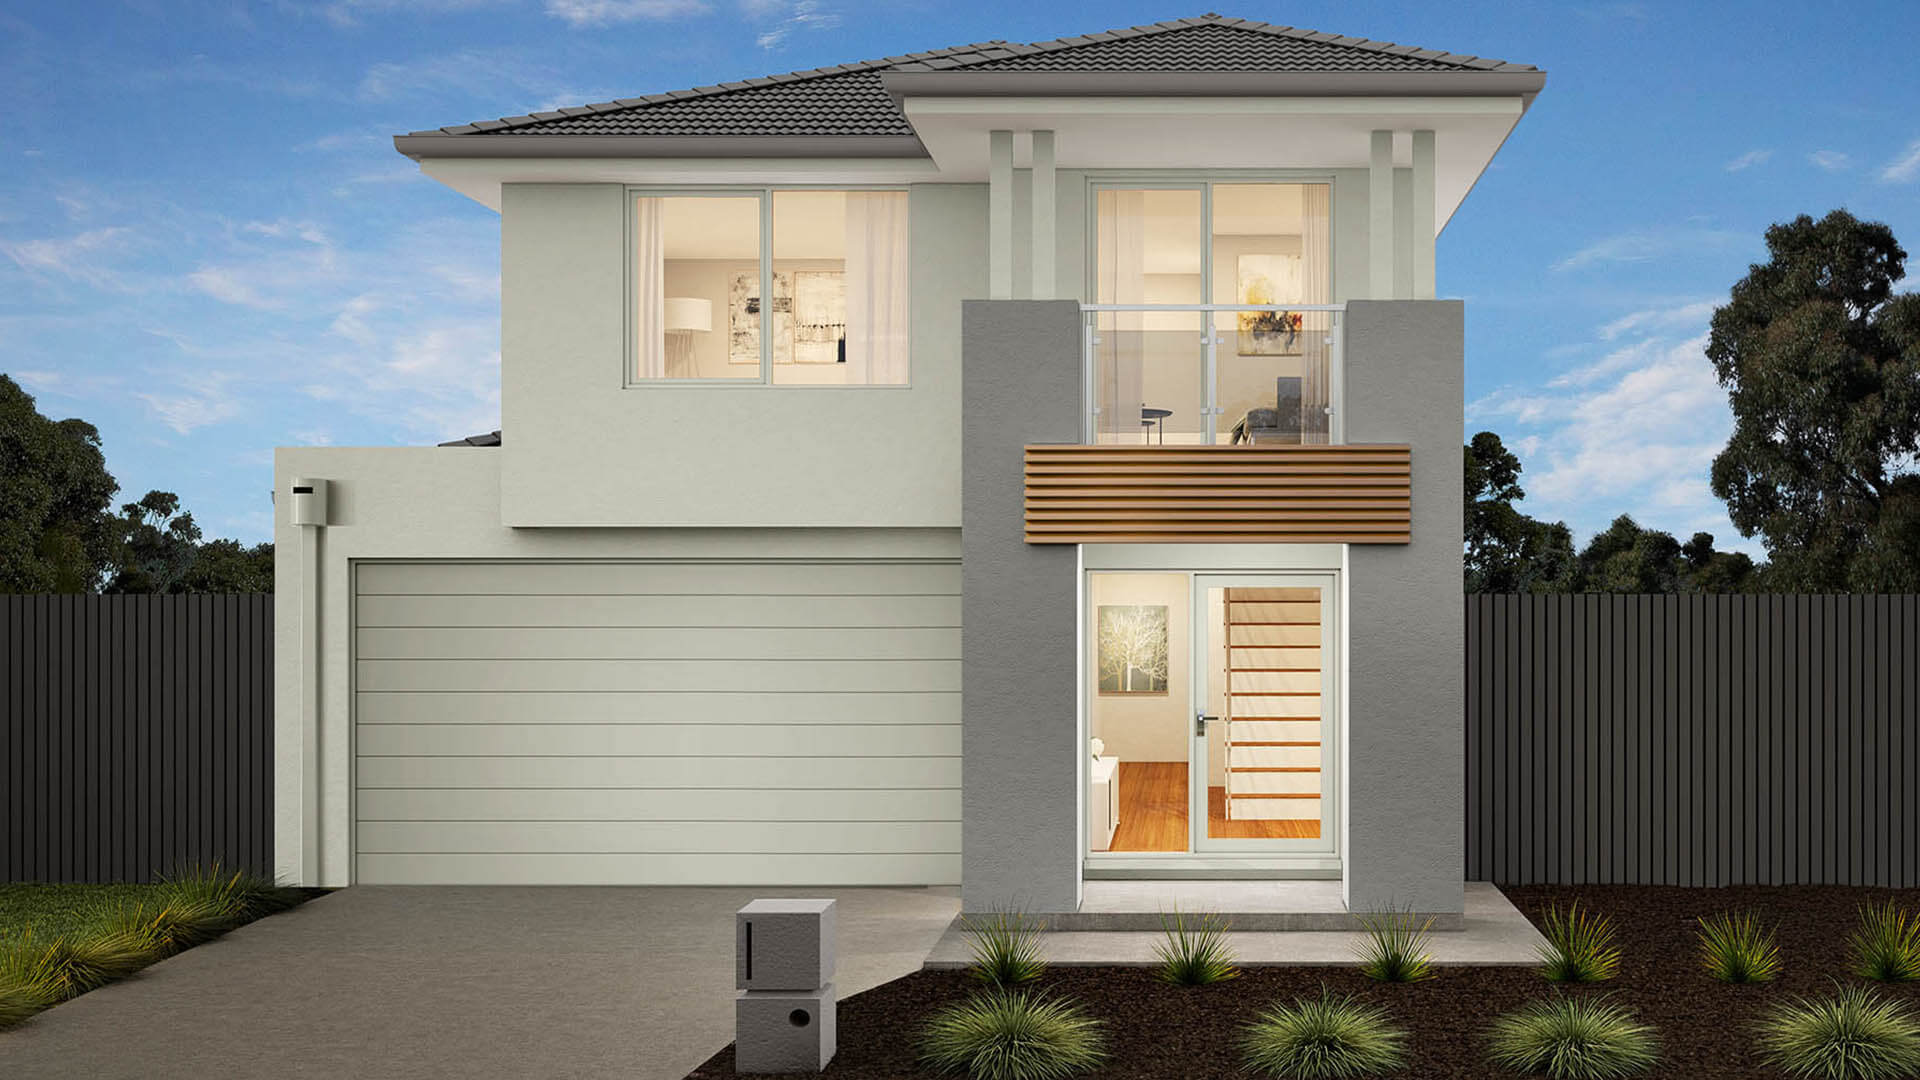 EASYLIVING CHEVAL NAPLES 10.5 (HEBEL) Exterior Image 2